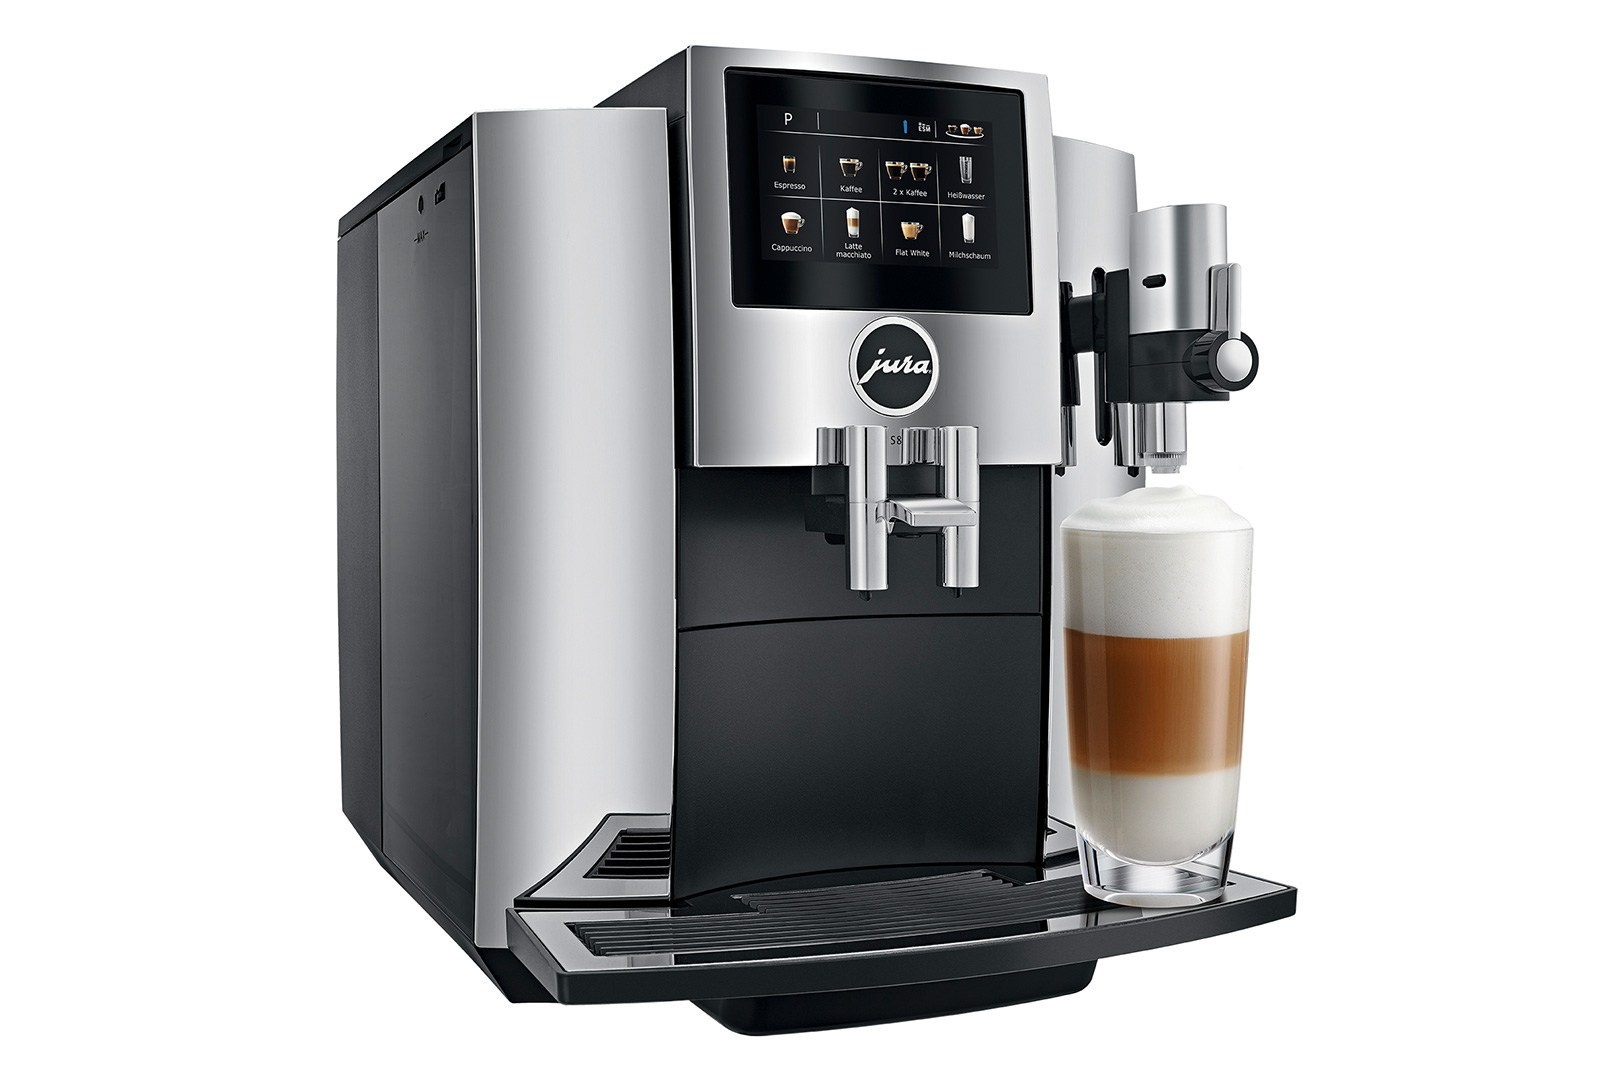 Httpsalatestcomreviewscoffee Espresso Maker Reviewsc3